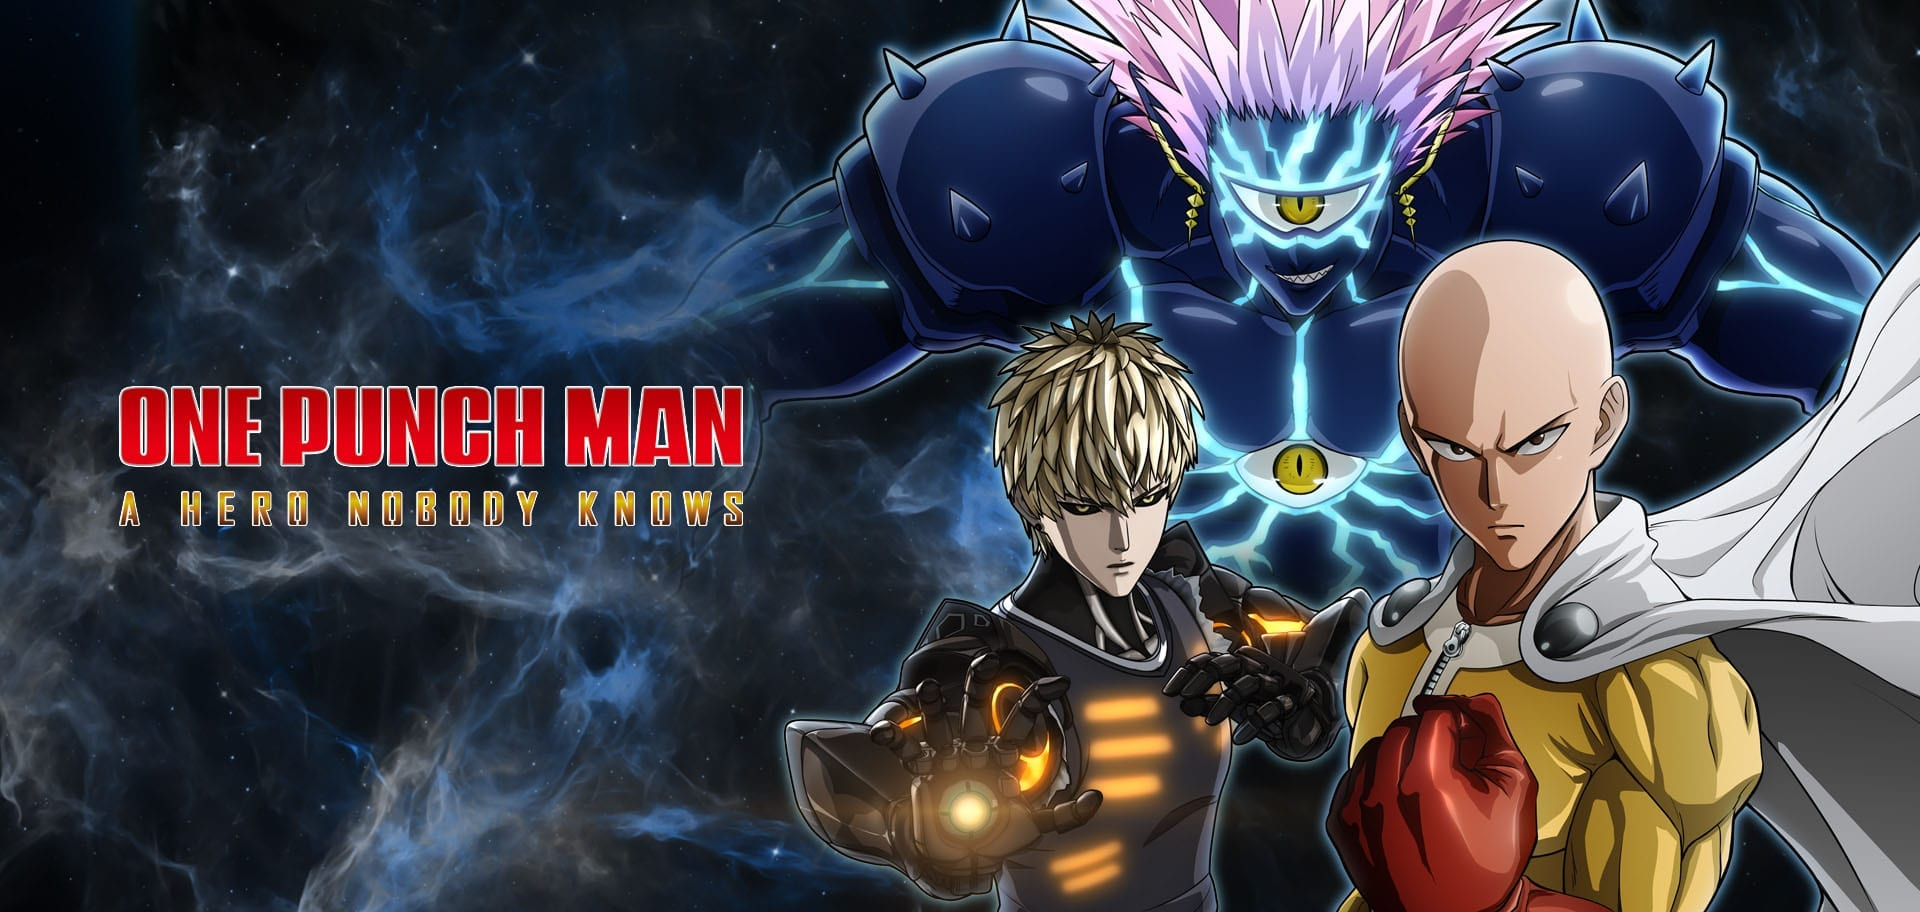 ONE PUNCH MAN A HERO NOBODY KNOWS Releases on 28 February 2020!